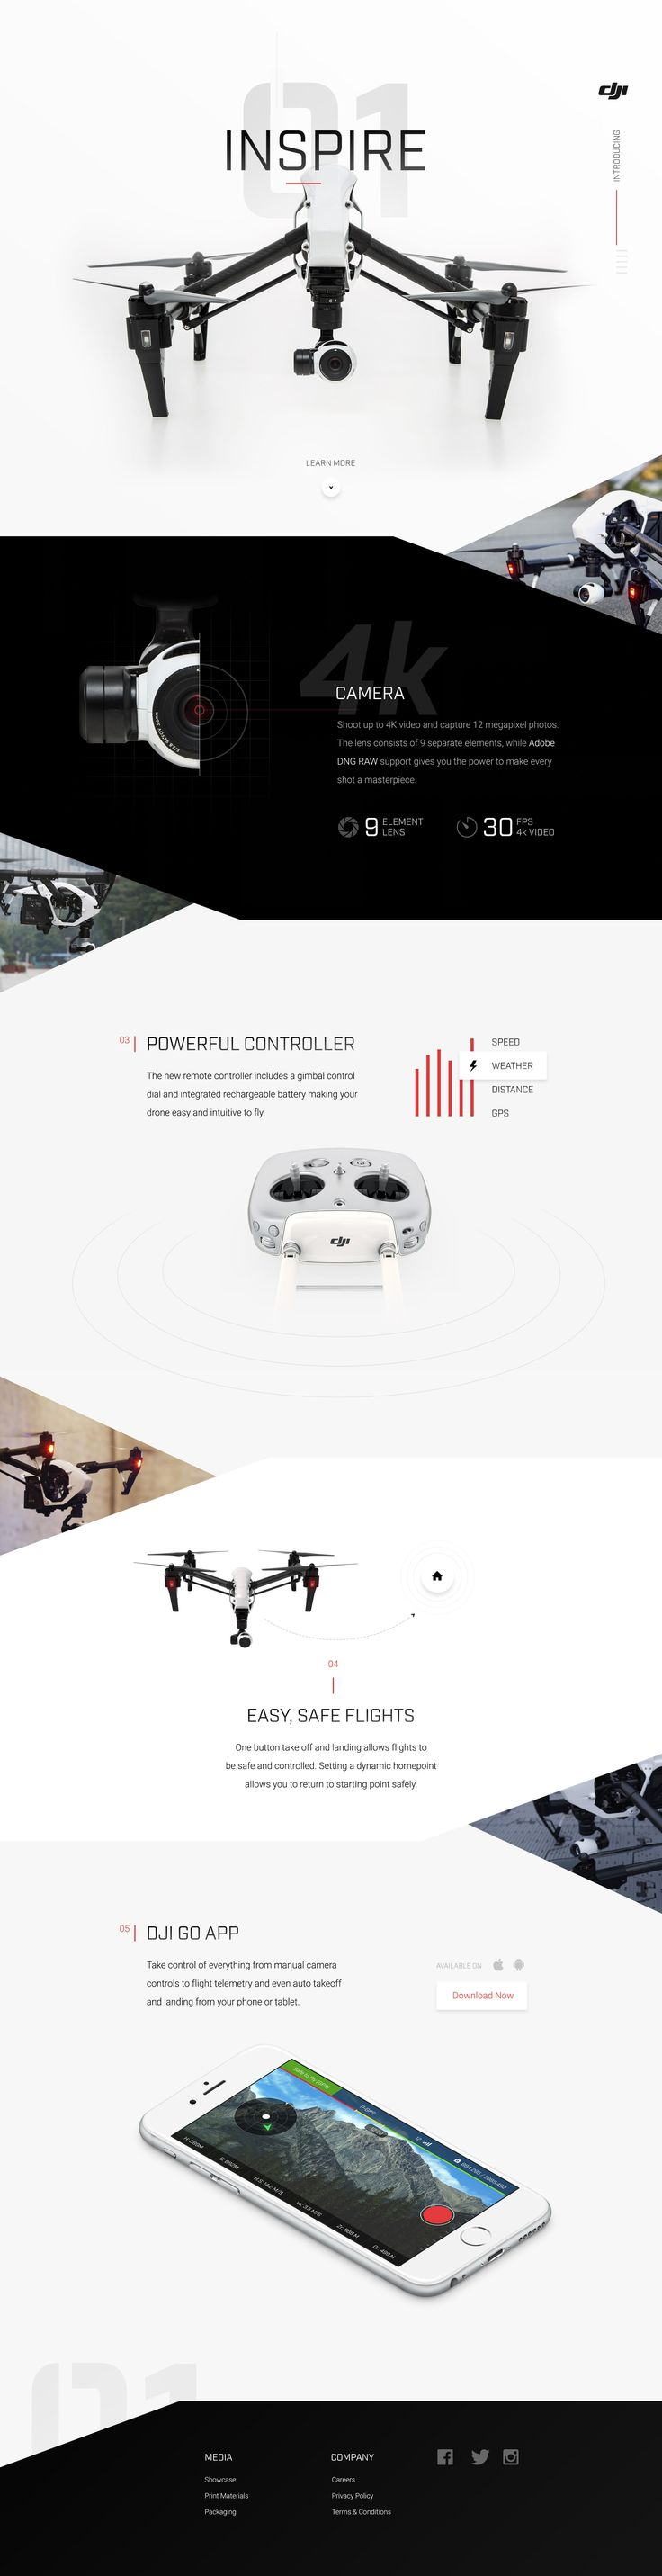 Ui design concept for the Inspire 1 Drone marketing page, by Sam Thibault @handsome.is